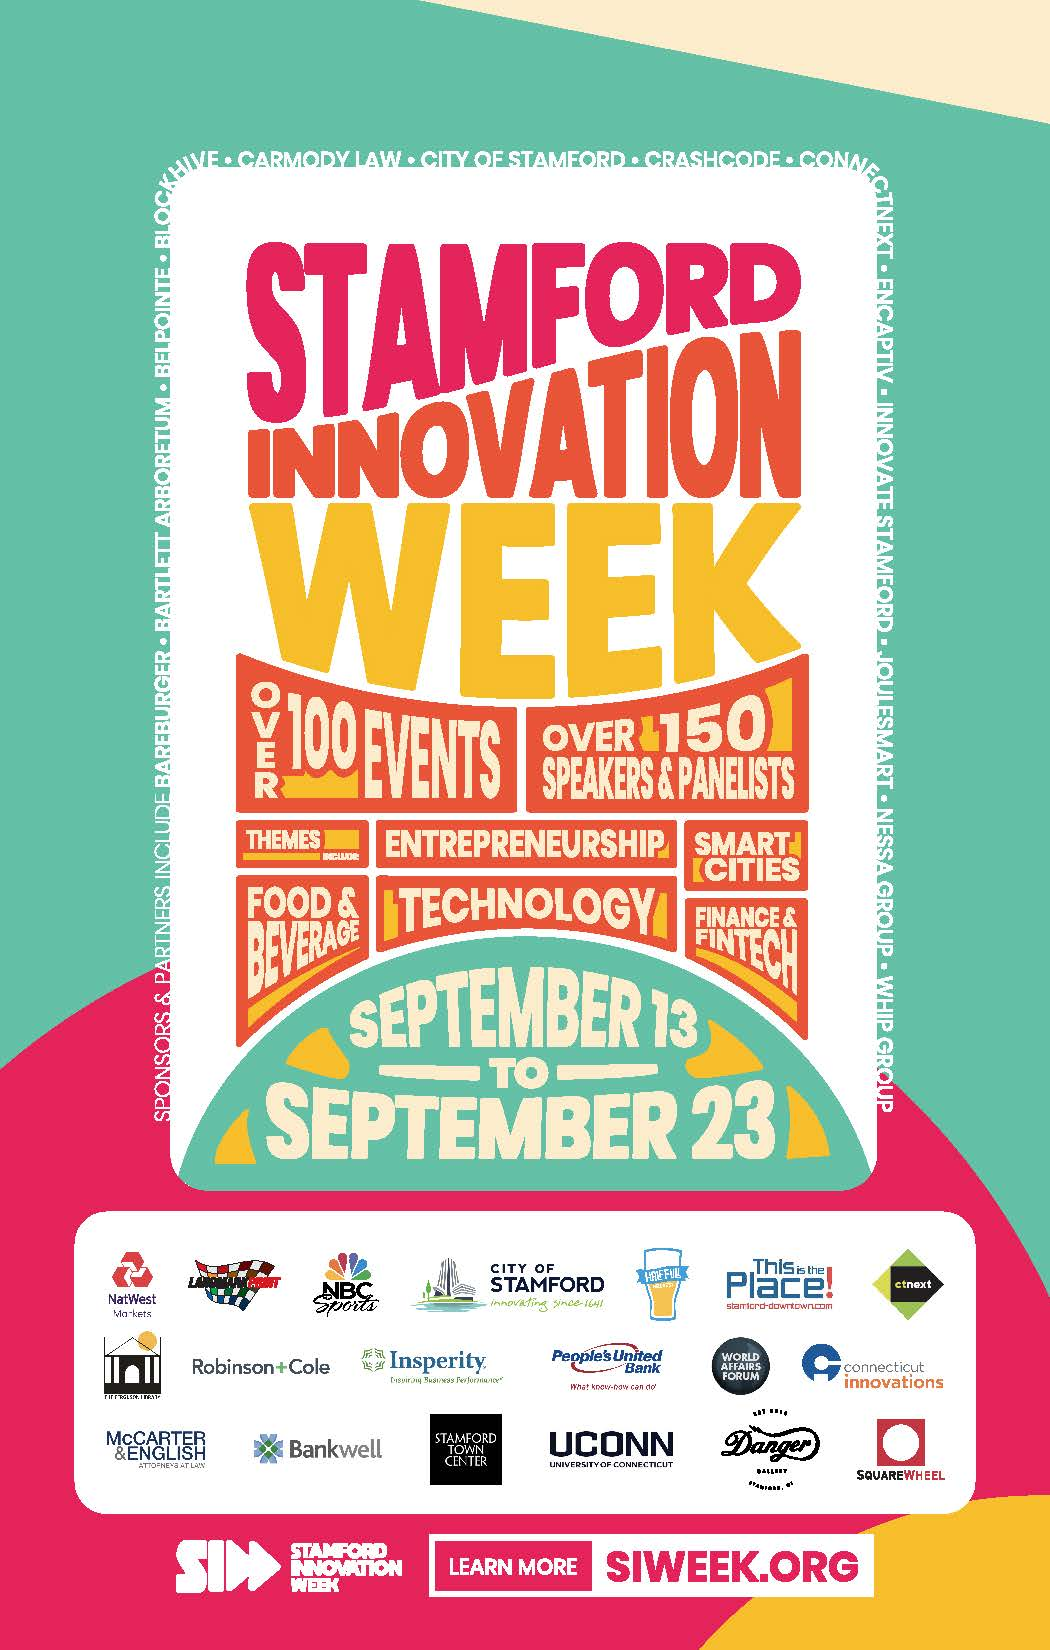 Stamford Innovation Week 2018 | Stamford Downtown - This is the place!